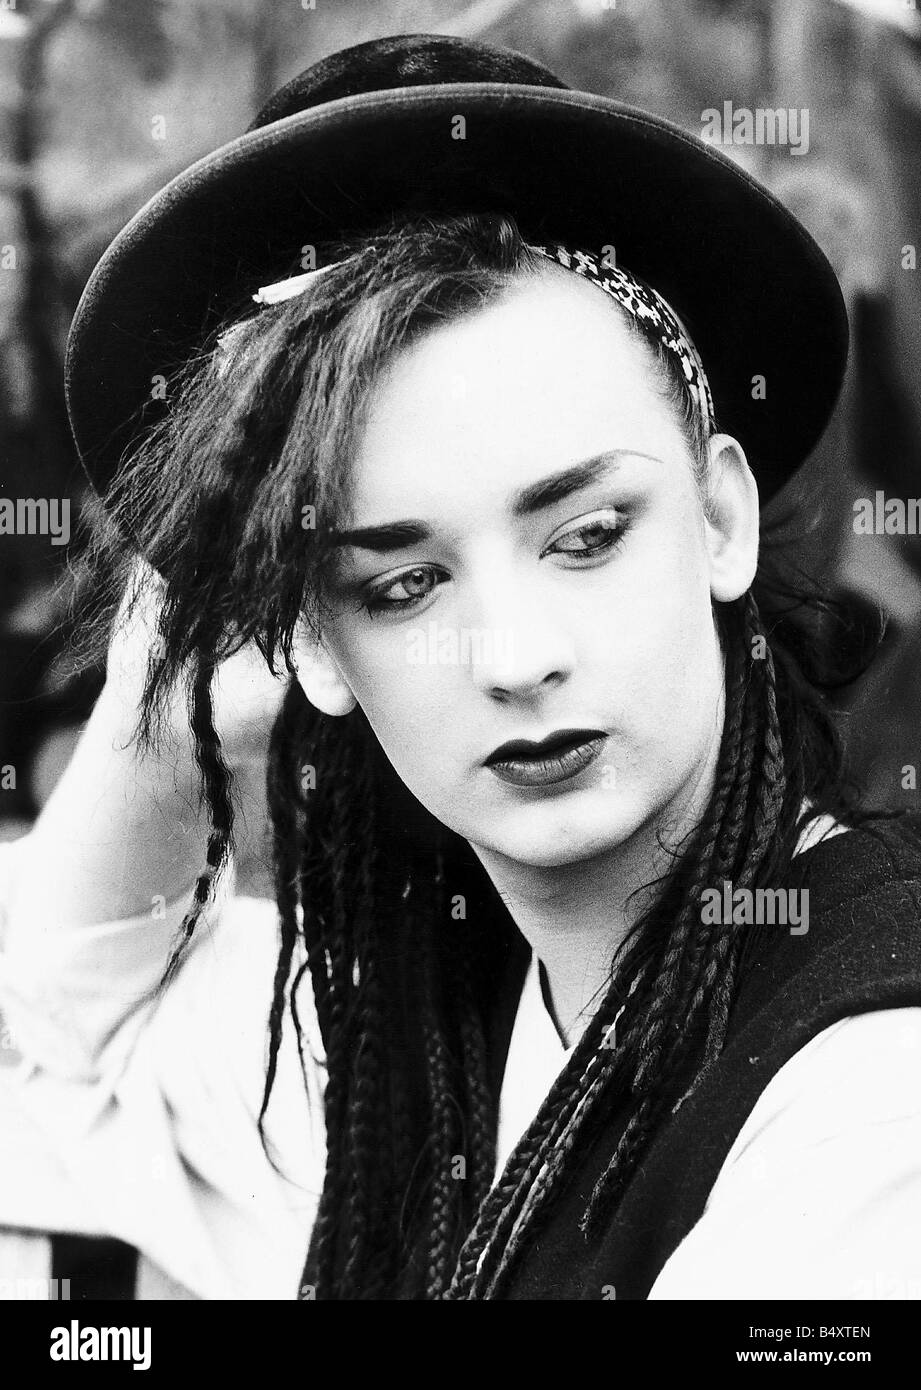 Boy George lead singer of pop group Culture Club - Stock Image